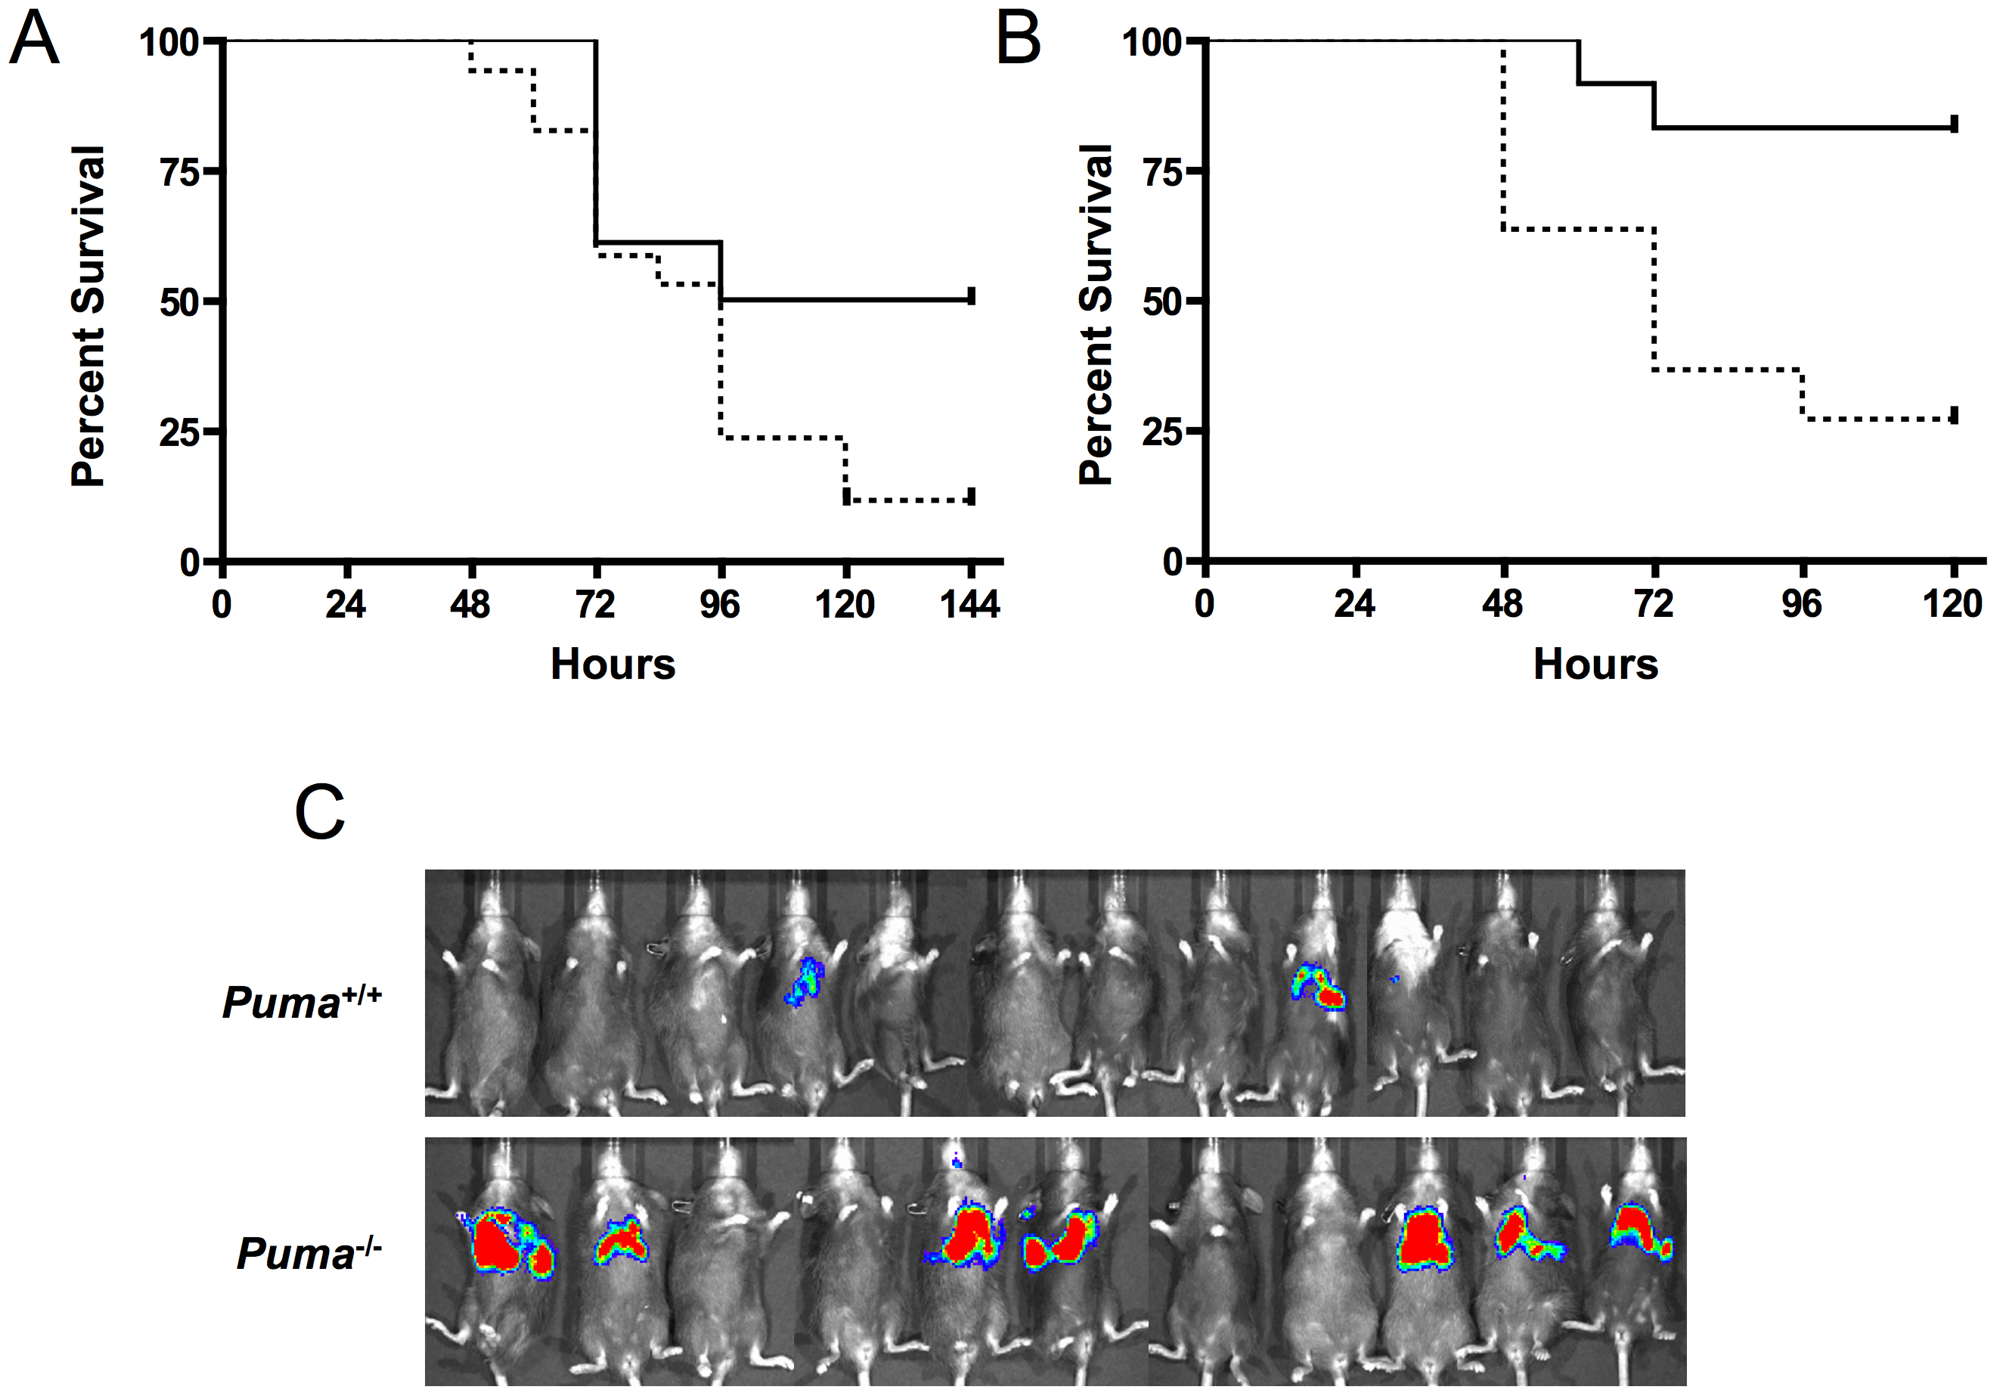 Survival of pneumococcal-infected mice deficient in p53 signaling factors.